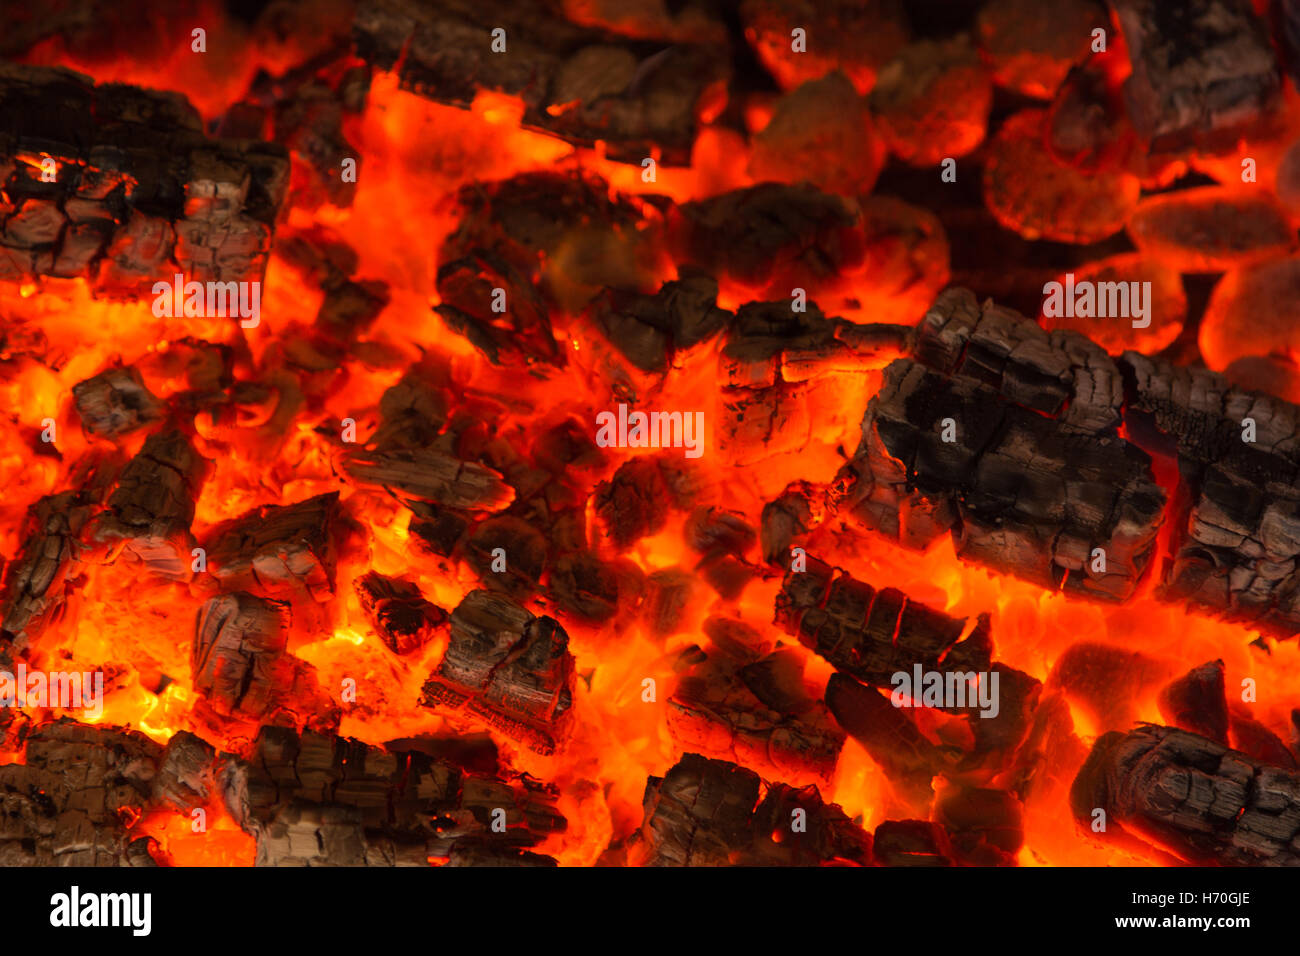 Orange burning smoulder charcoal texture in a barbeque oven - Stock Image